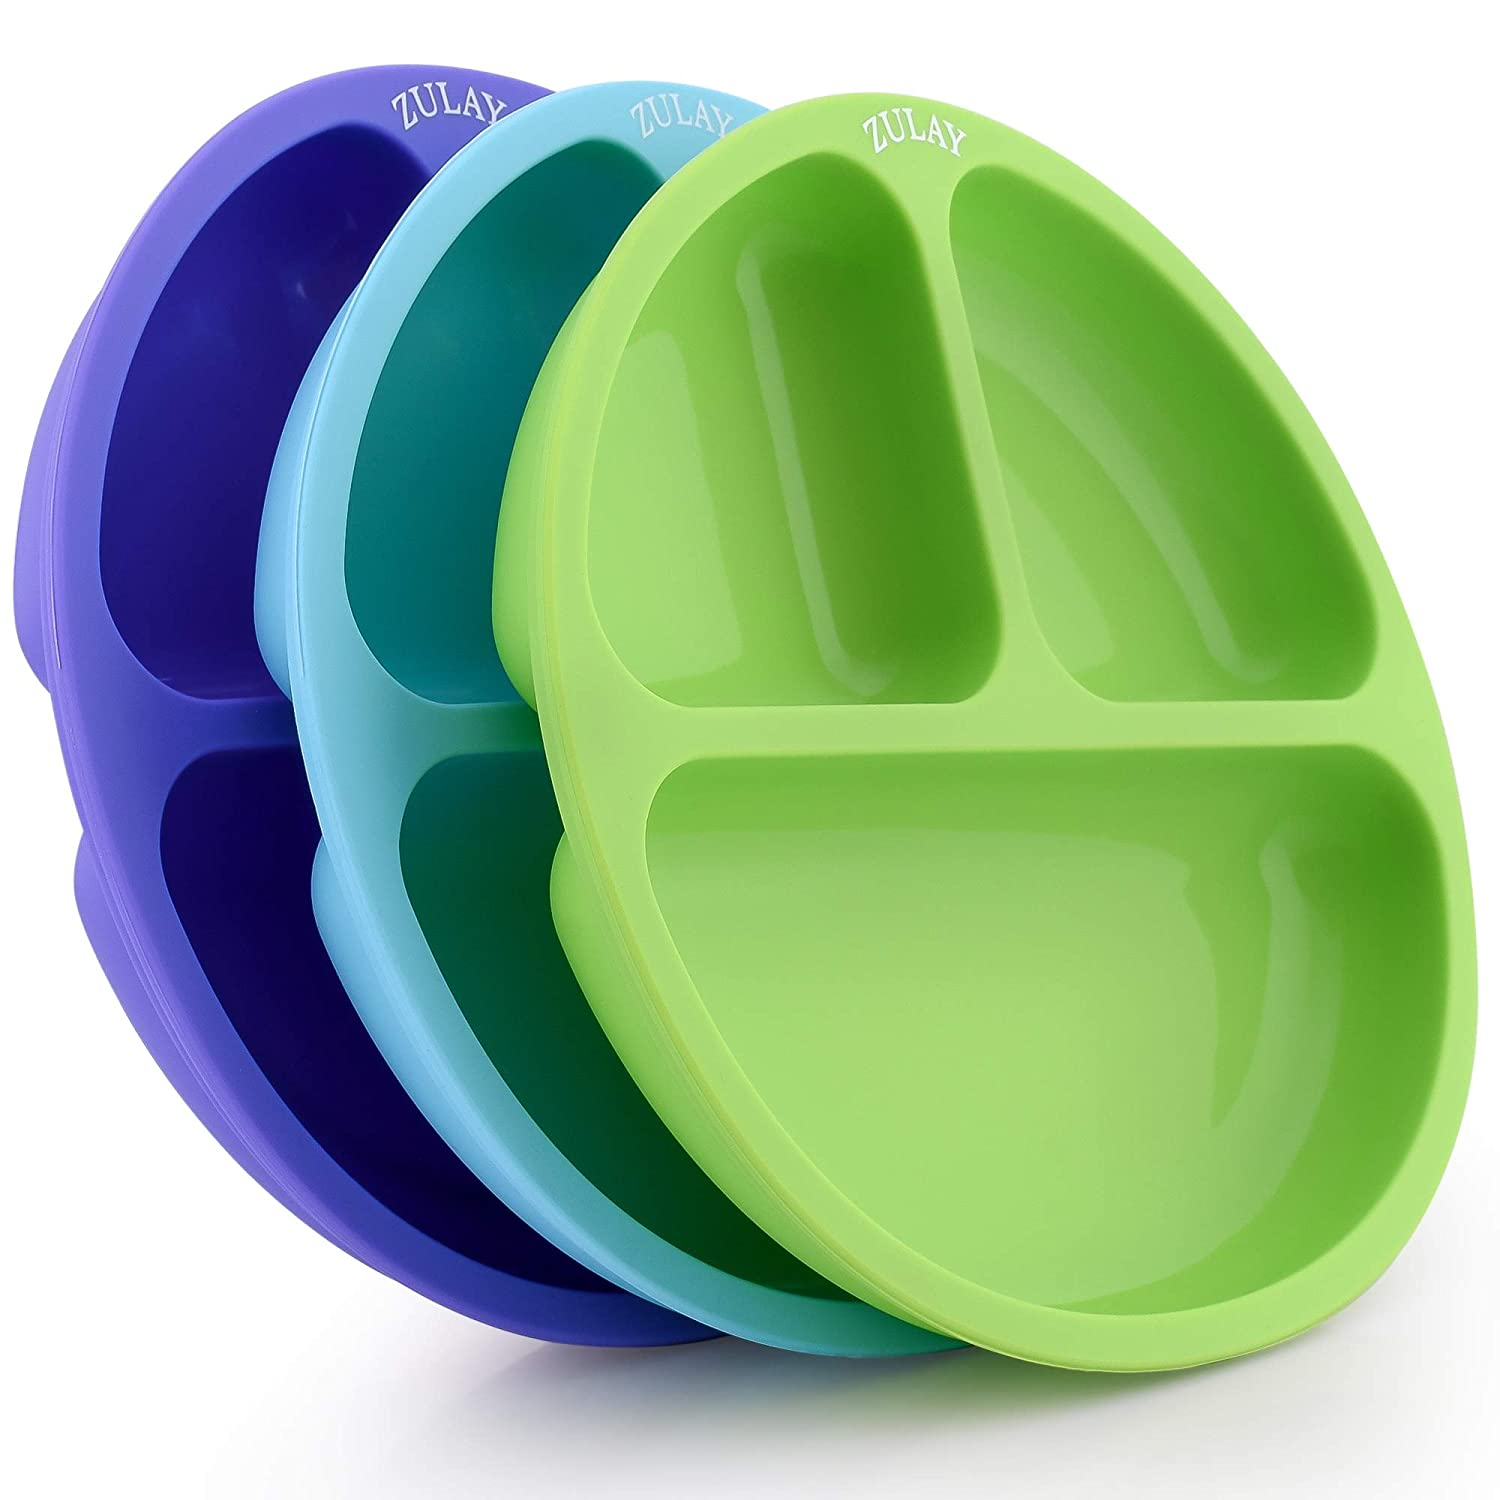 Zulay Silicone Divided Baby Plates (3pcs) - 100% Quality BPA Free Silicone Toddler Plates Divided Design - Dishwasher-Friendly Flexible Silicone Baby Plate - Purple, Green & Blue